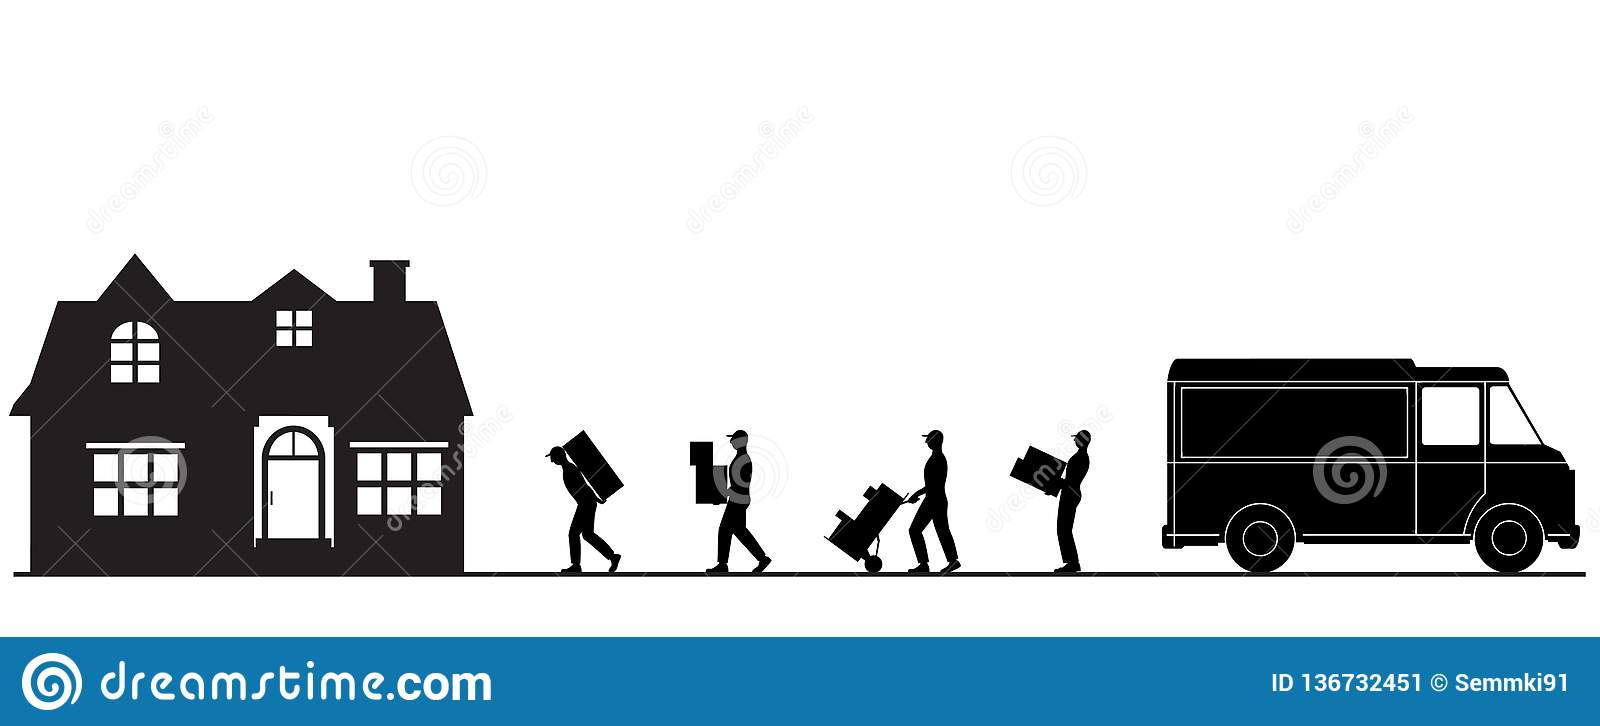 illustration porters carry boxes. Moving to a new house. Unloading a truck.Transport company. Goods delivery